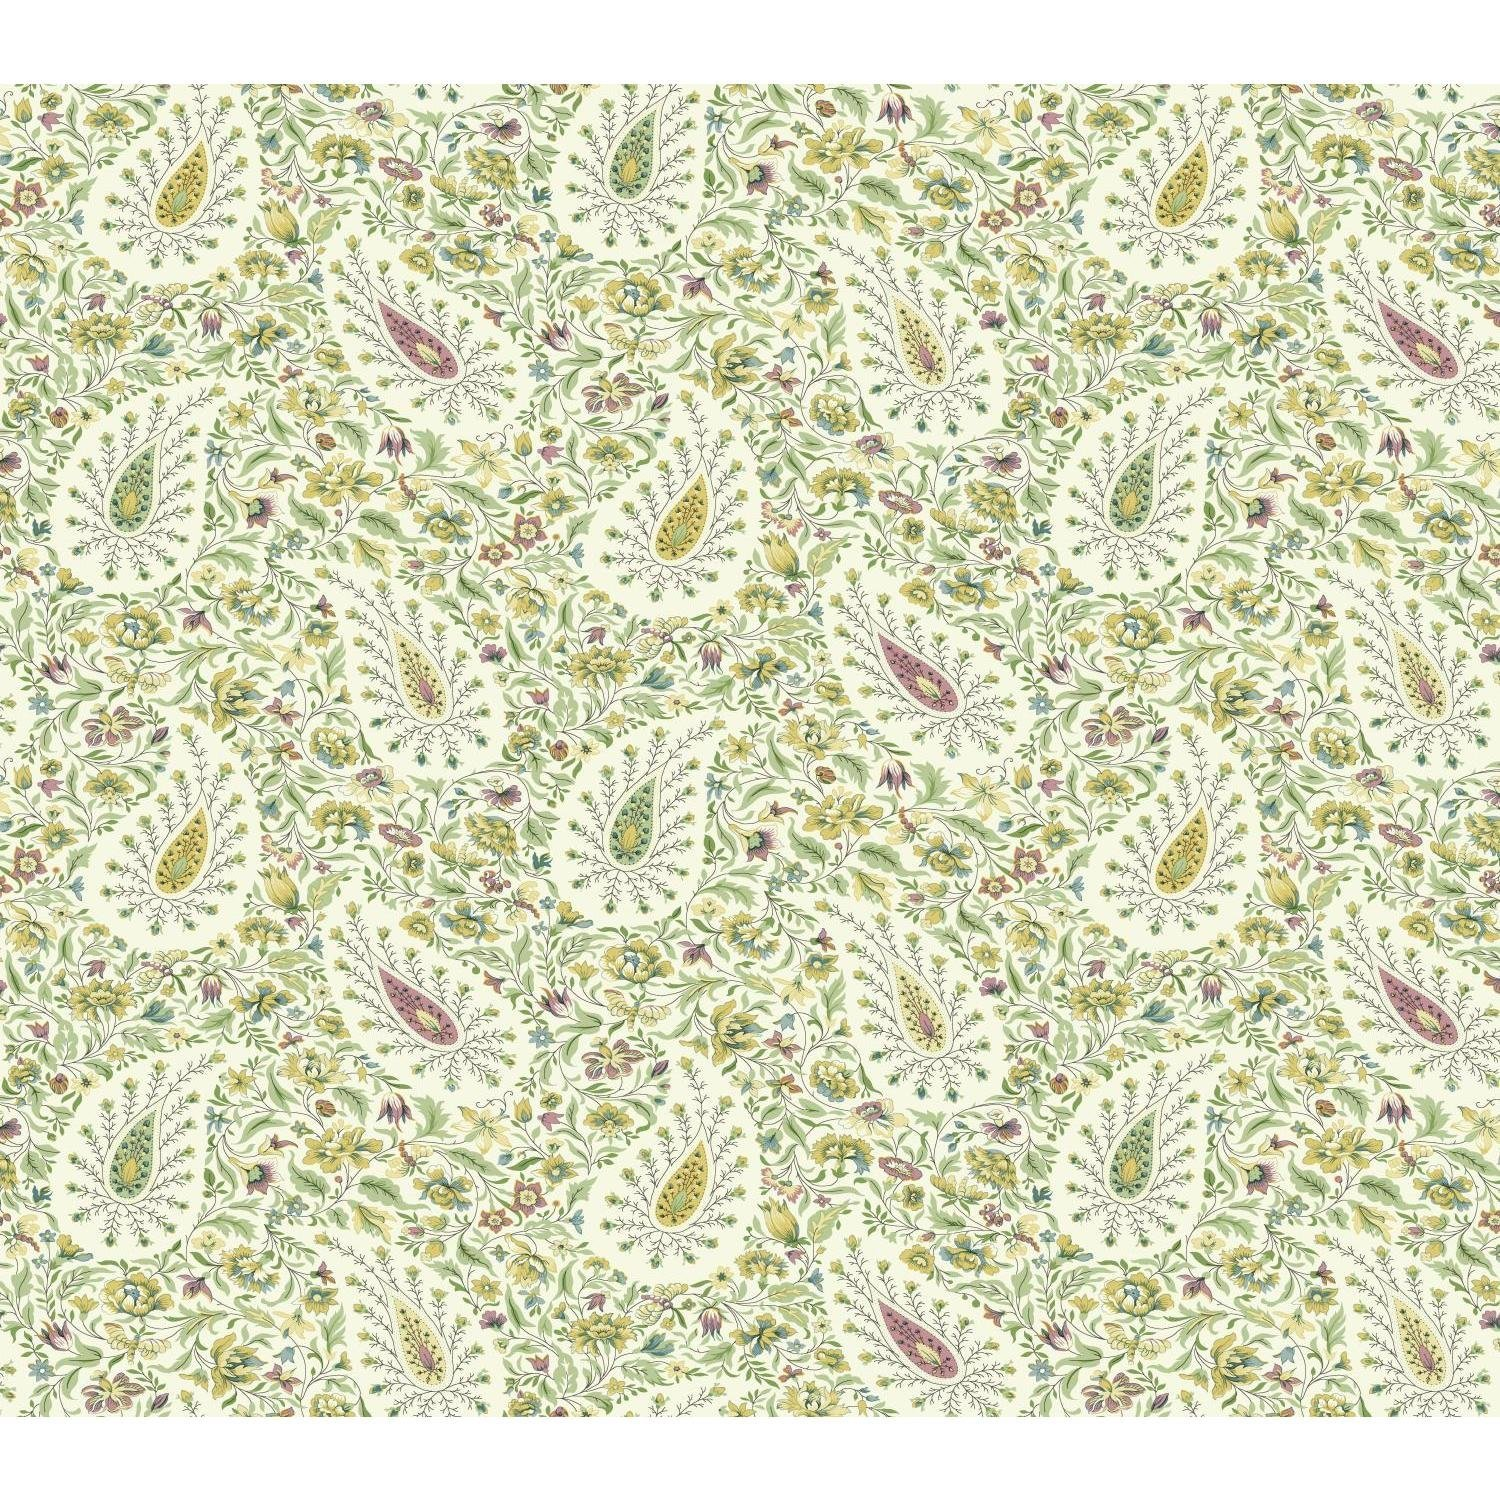 Cheap Waverly Wallcoverings Find Waverly Wallcoverings Deals On